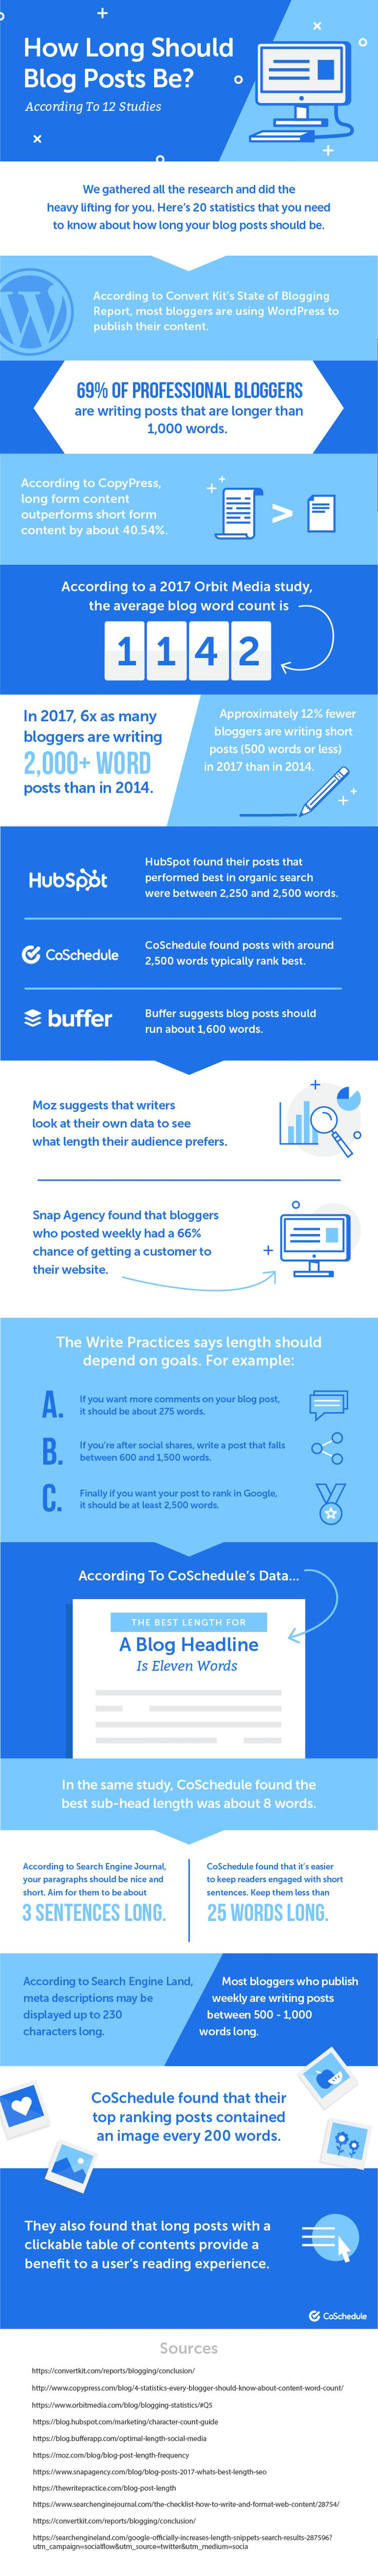 All the data you need to know about blog post length. https://coschedule.com/blog/how-long-should-a-blog-post-be/?utm_campaign=coschedule&utm_source=pinterest&utm_medium=CoSchedule&utm_content=How%20Long%20Should%20a%20Blog%20Post%20Be%20to%20Get%20the%20Most%20Traffic%20and%20Shares%3F